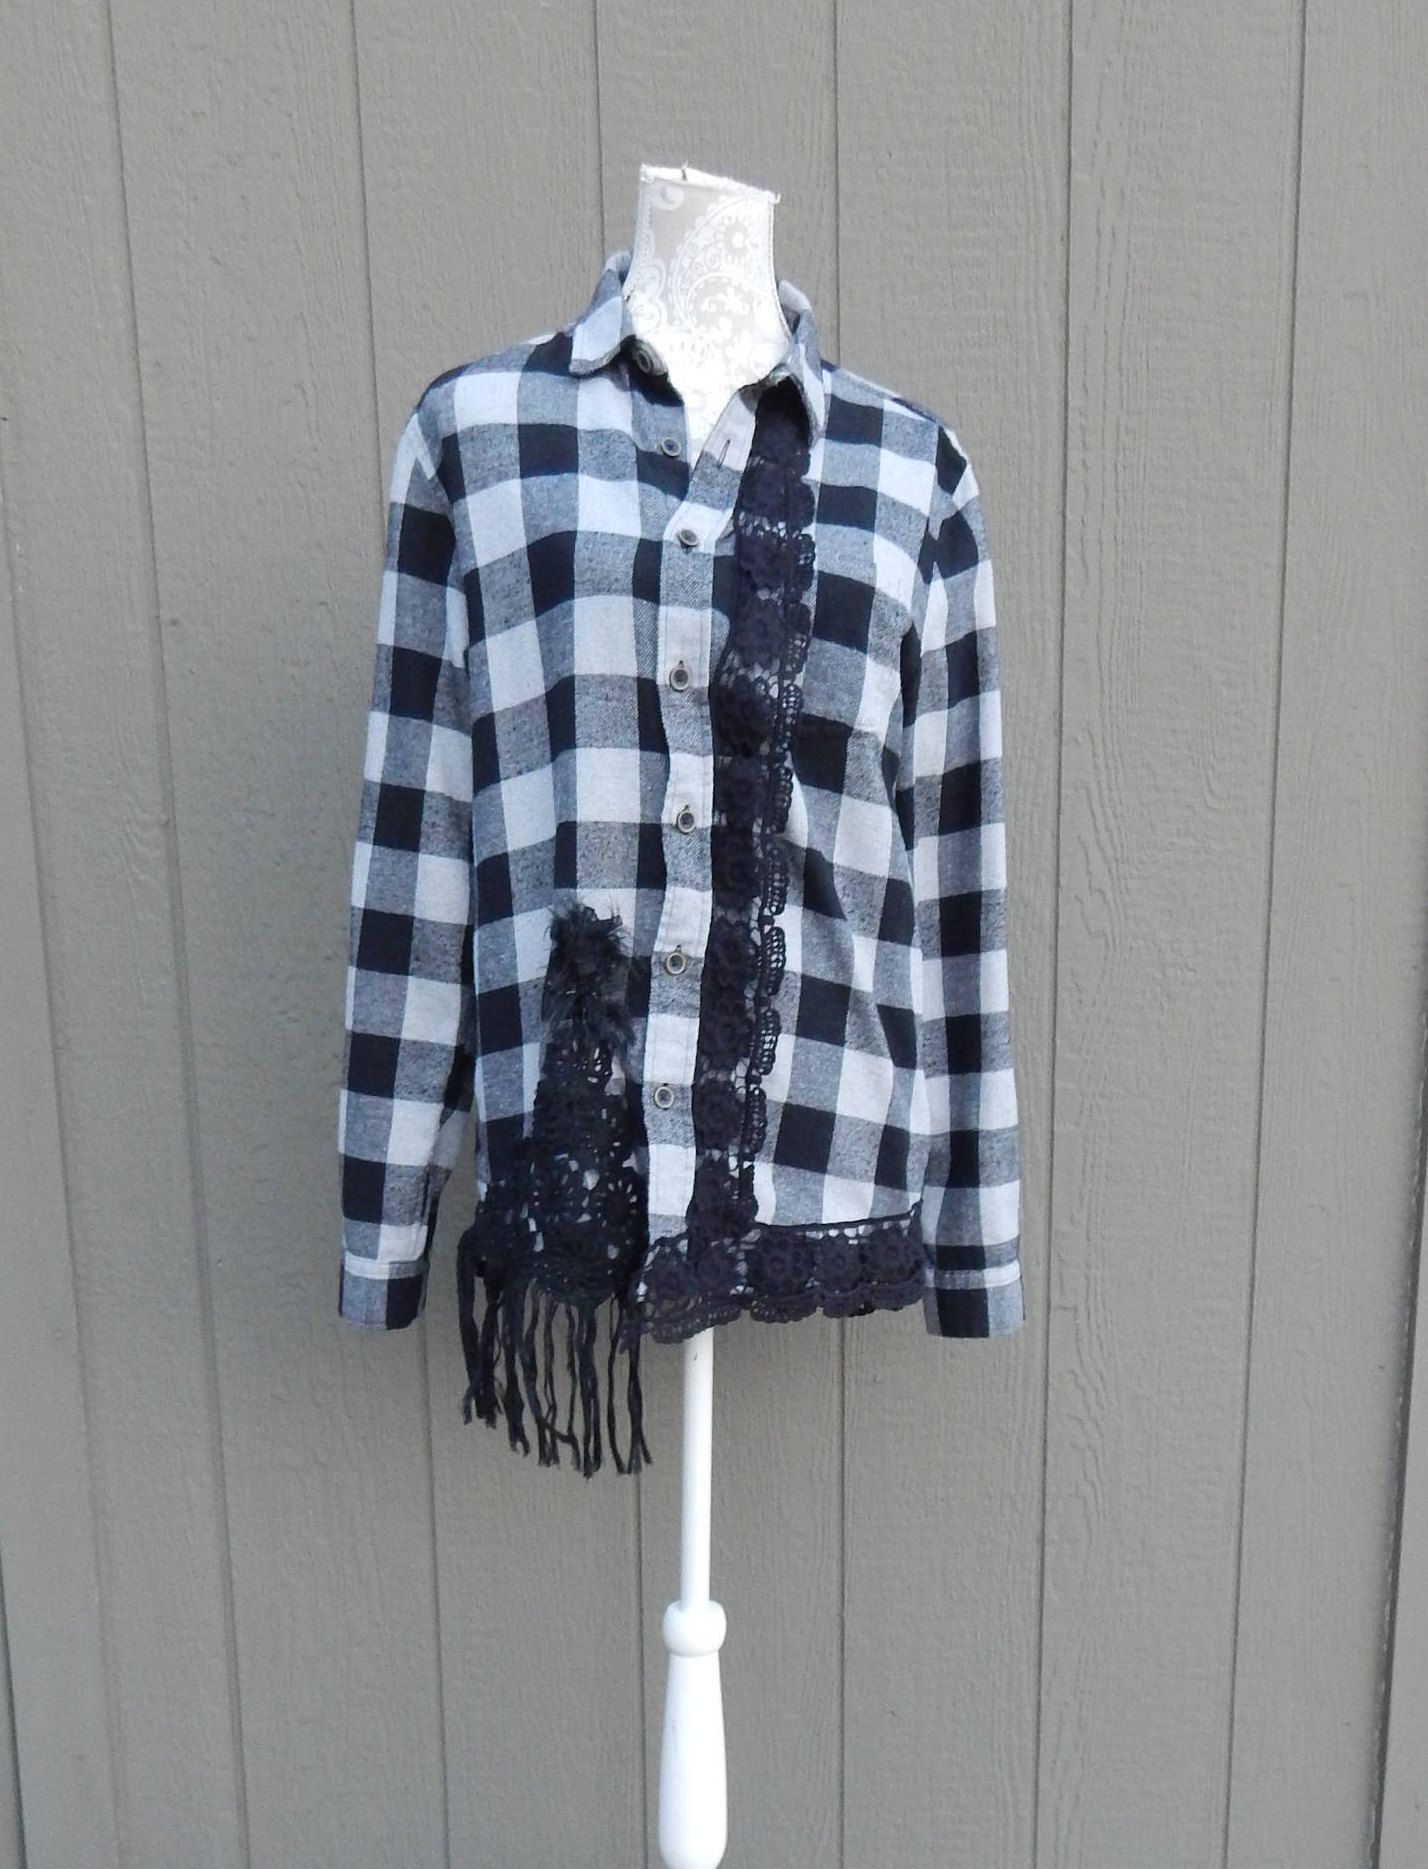 Flannel shirt black and grey  Altered Womenus Black and Gray Flannel Shirt Altered Couture